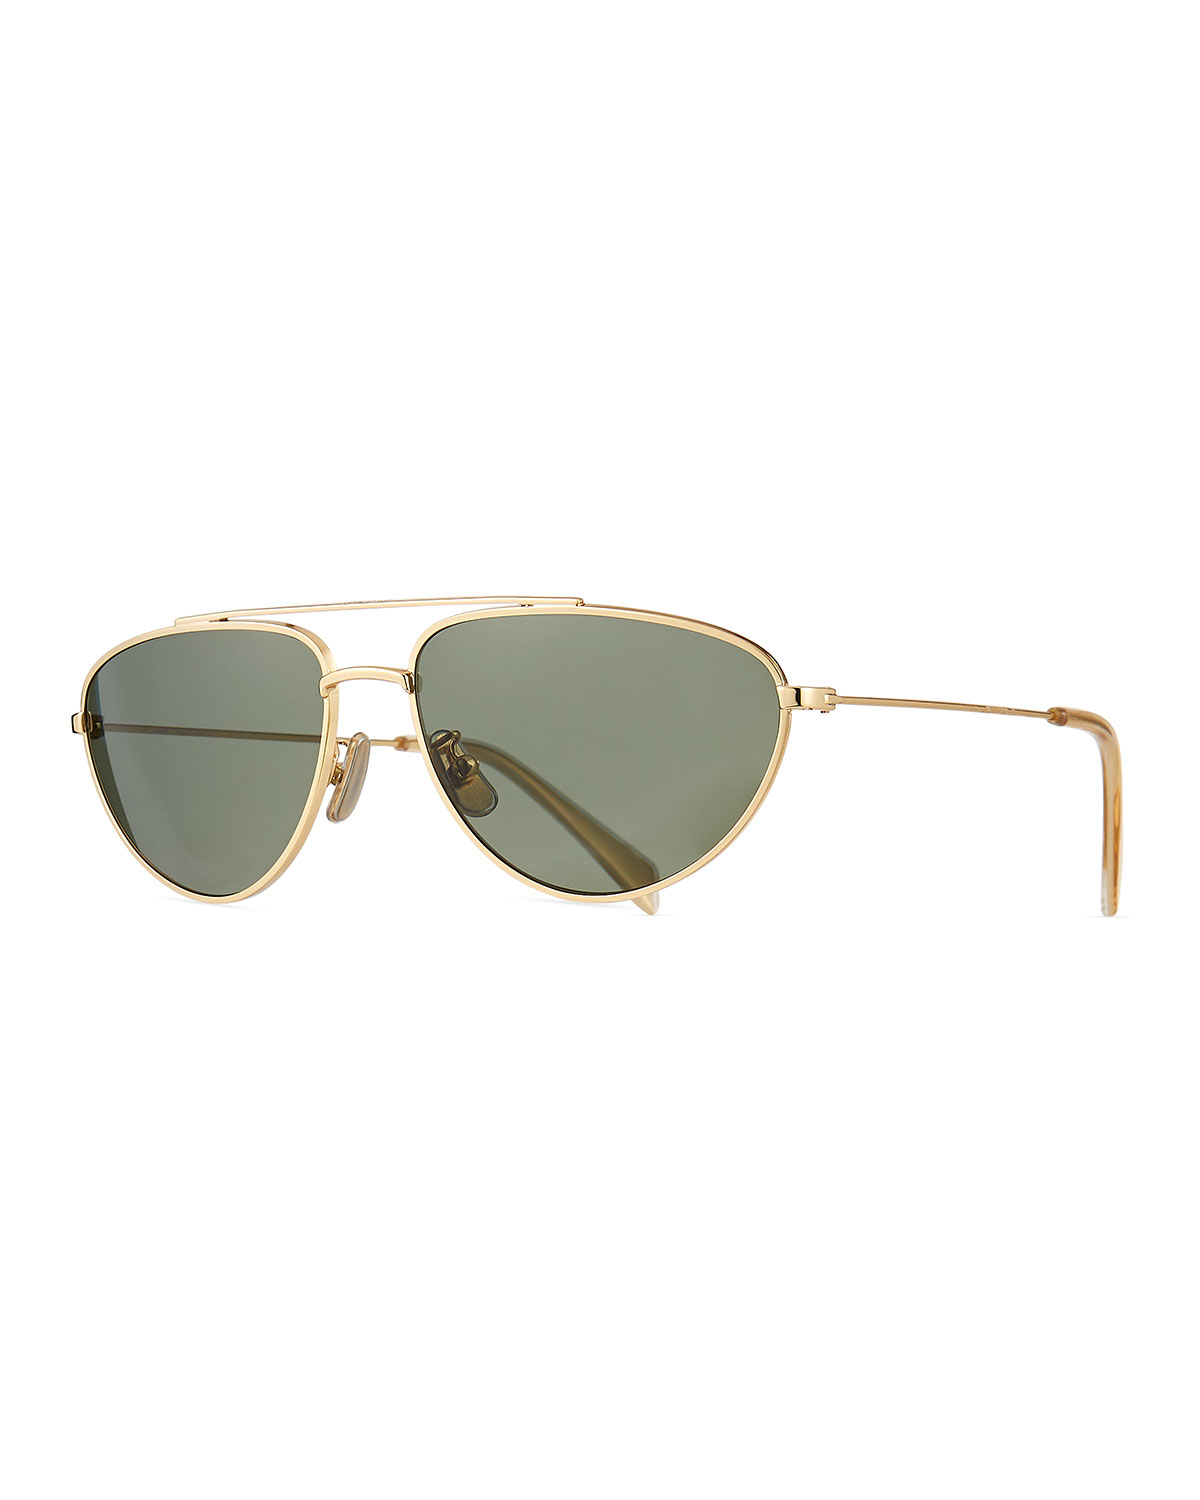 d93c4e7c8d Celine Men s Metal Pilot Sunglasses